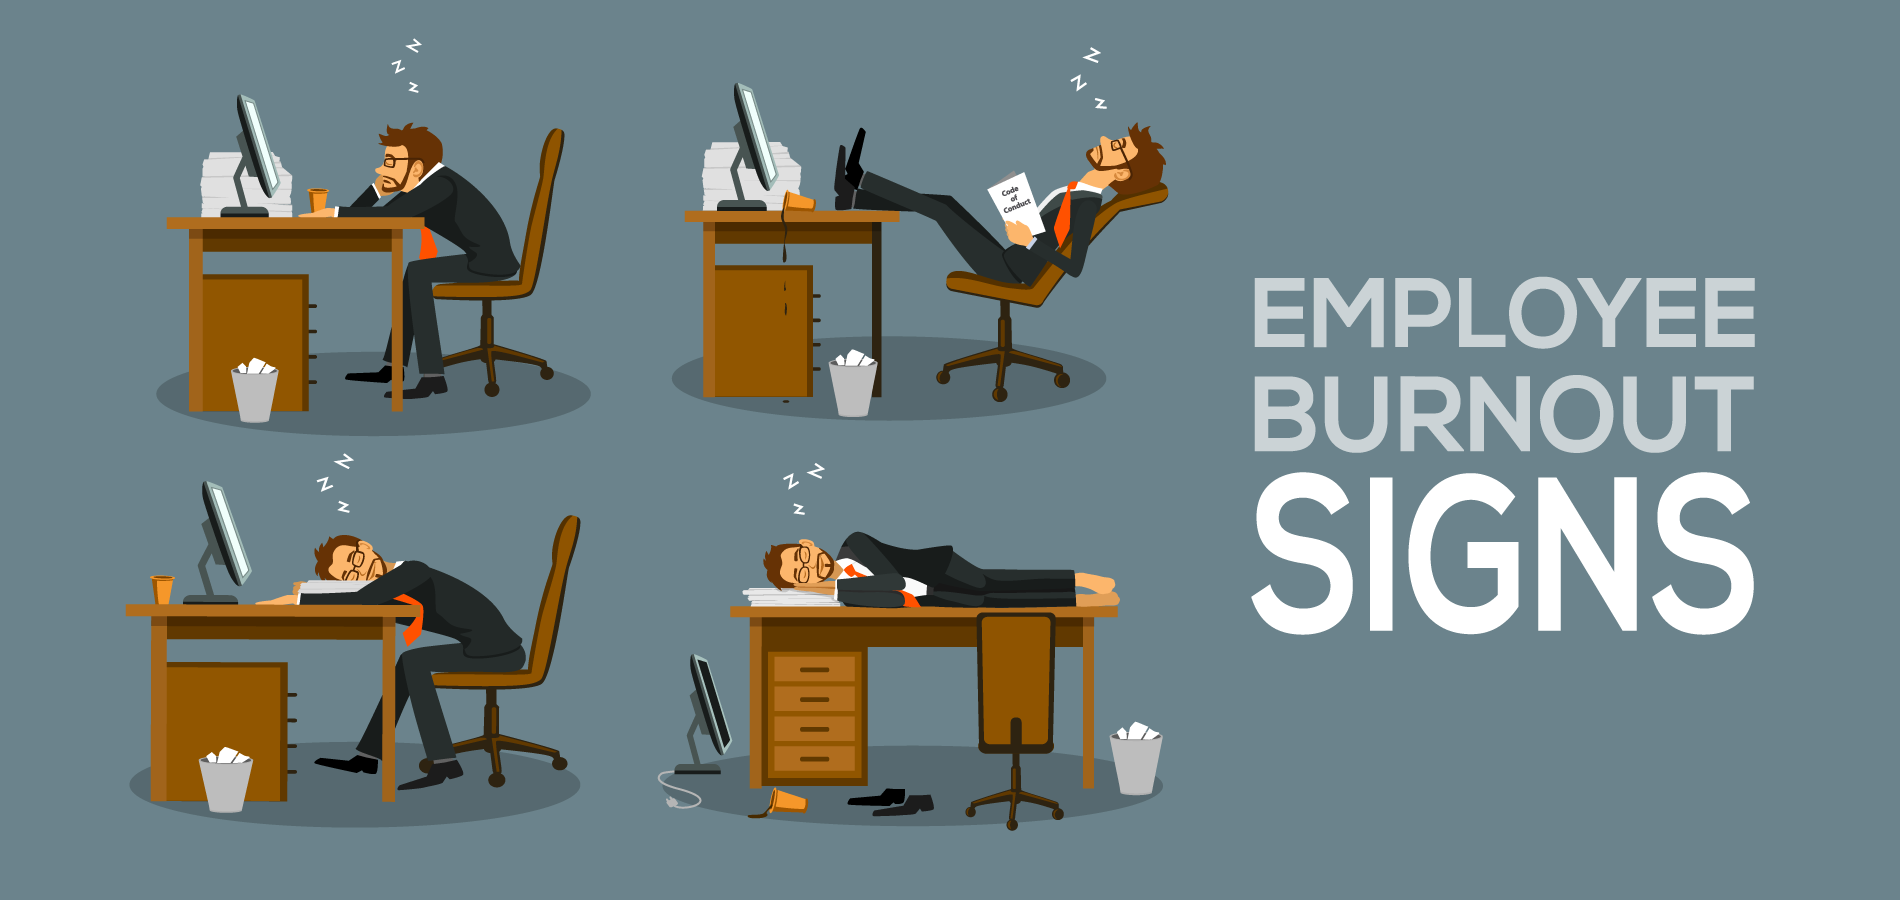 How to Spot the Employee Burnout Signs Companies Miss